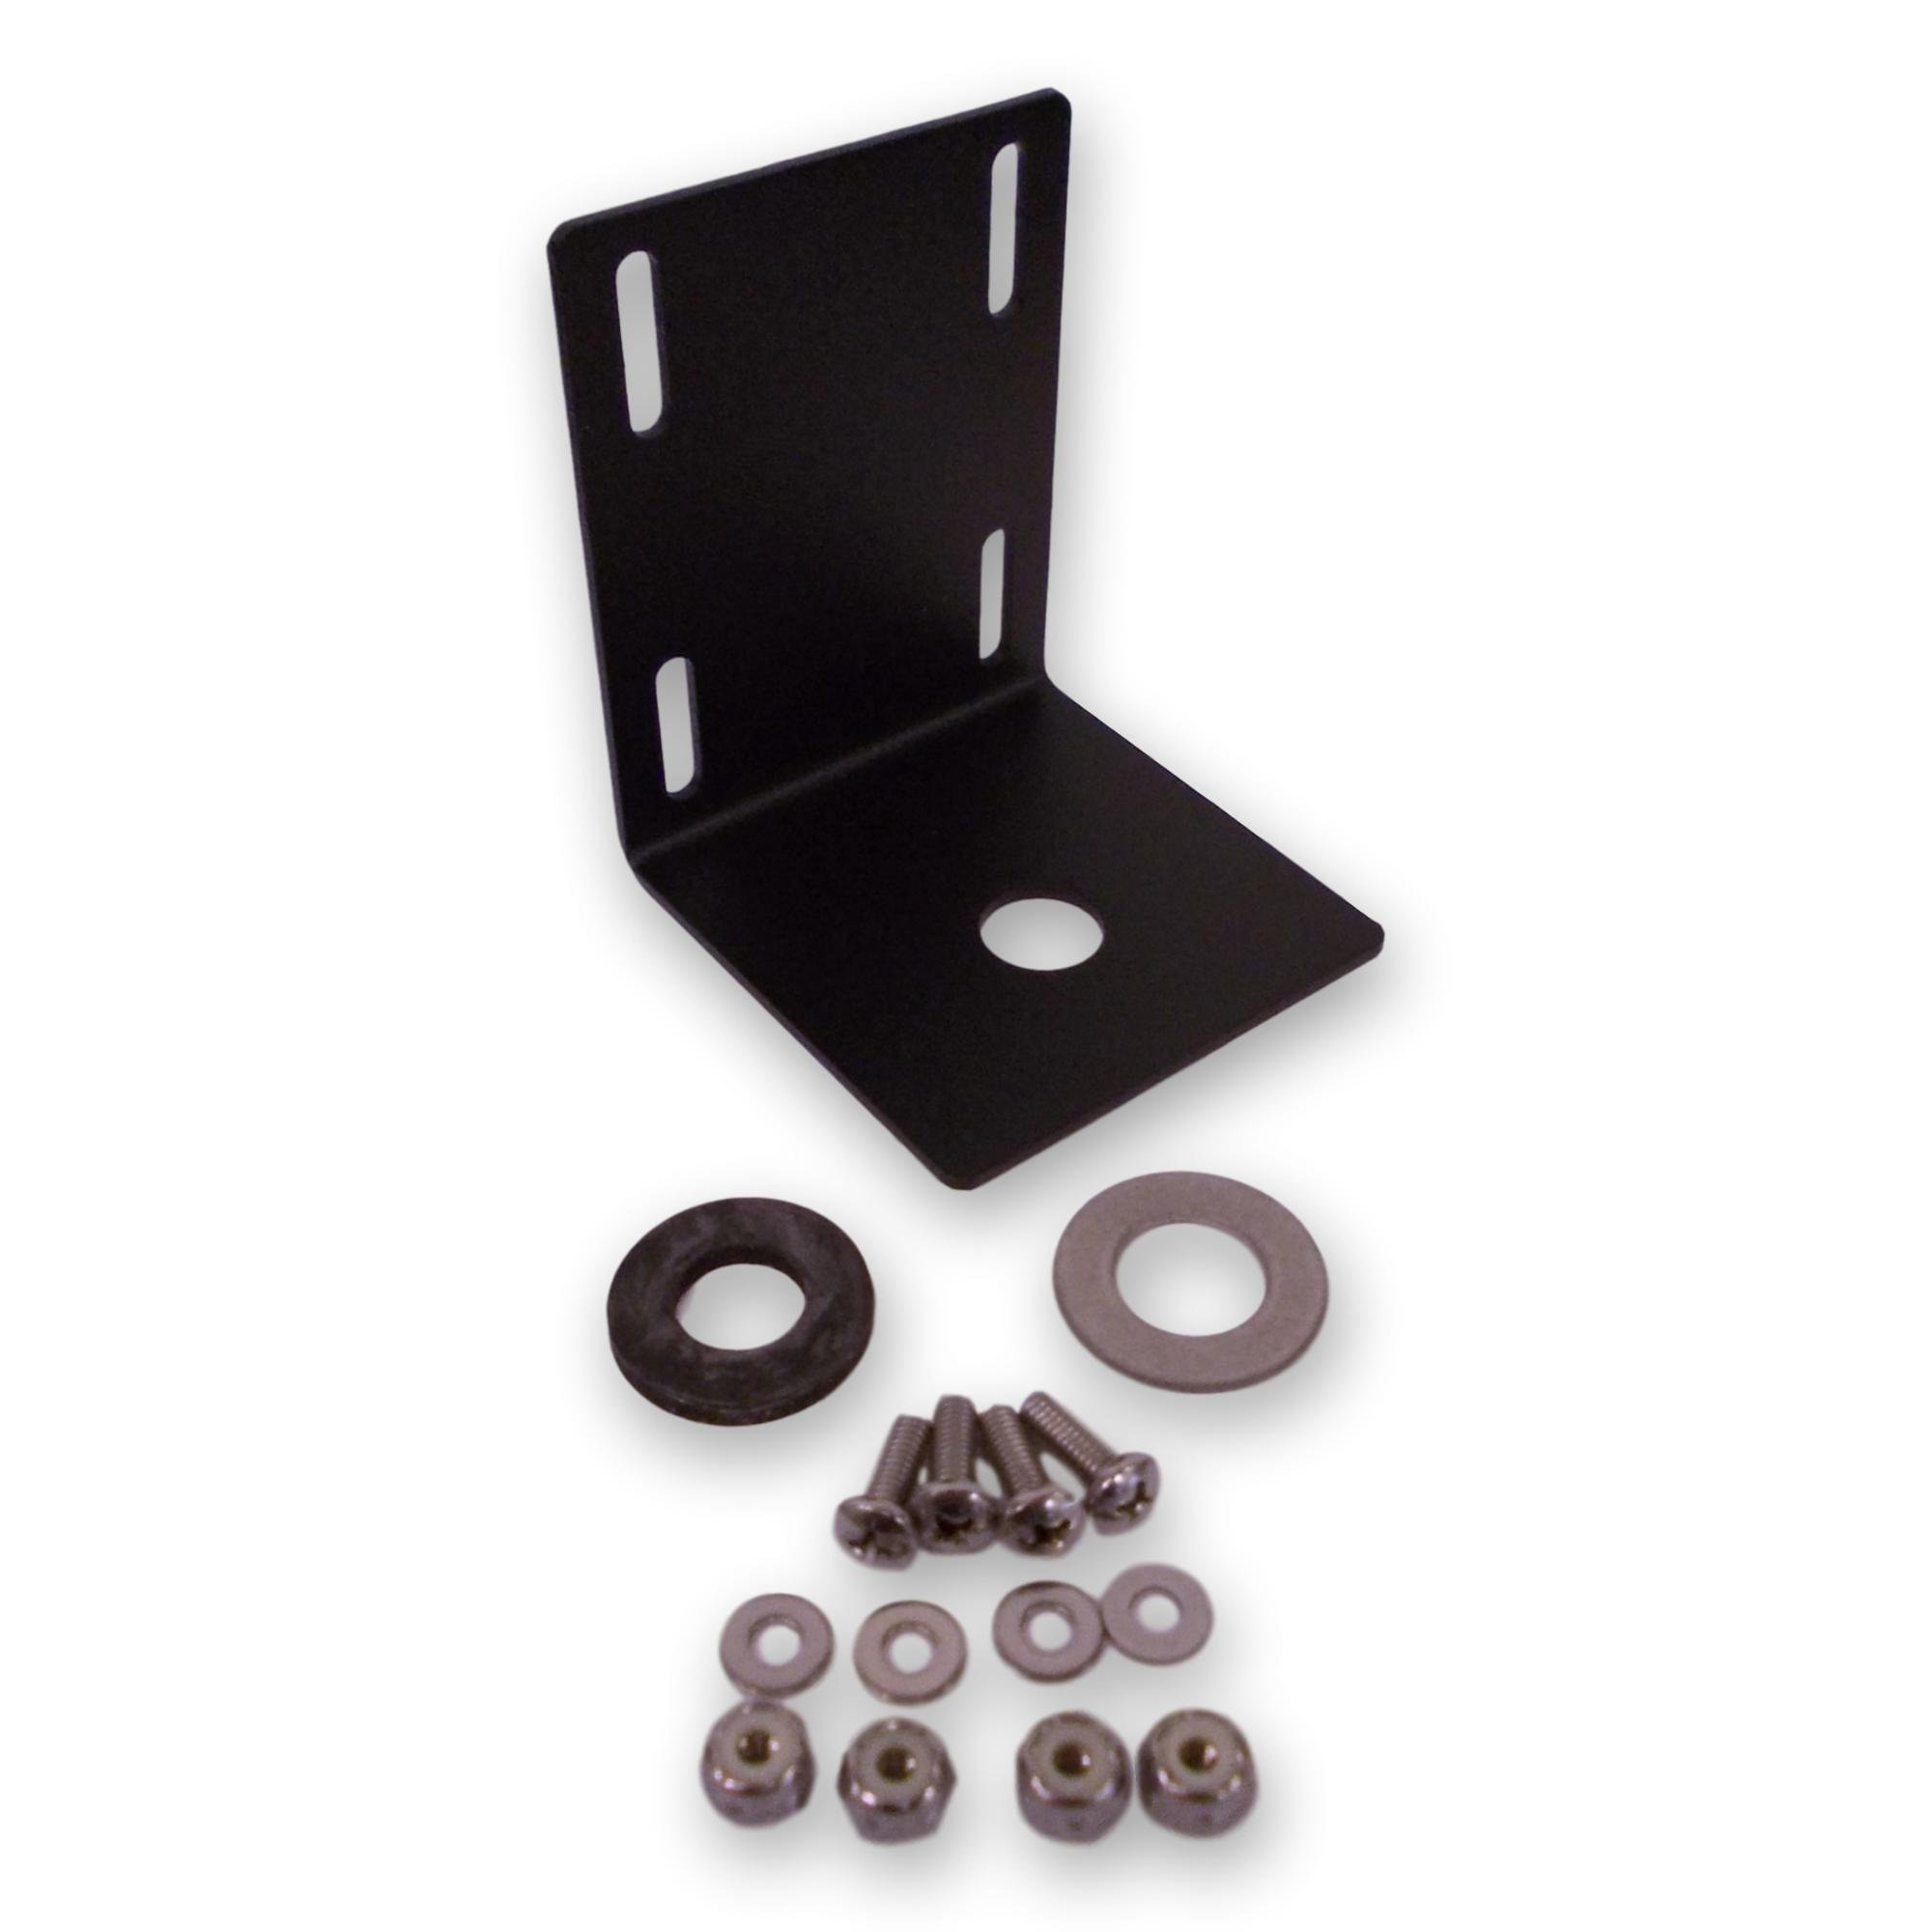 250-LM-BR Right Weigh Exterior Load Scale Bracket - For 250 Series Lower Mount Gauges by Right Weigh Load Scales